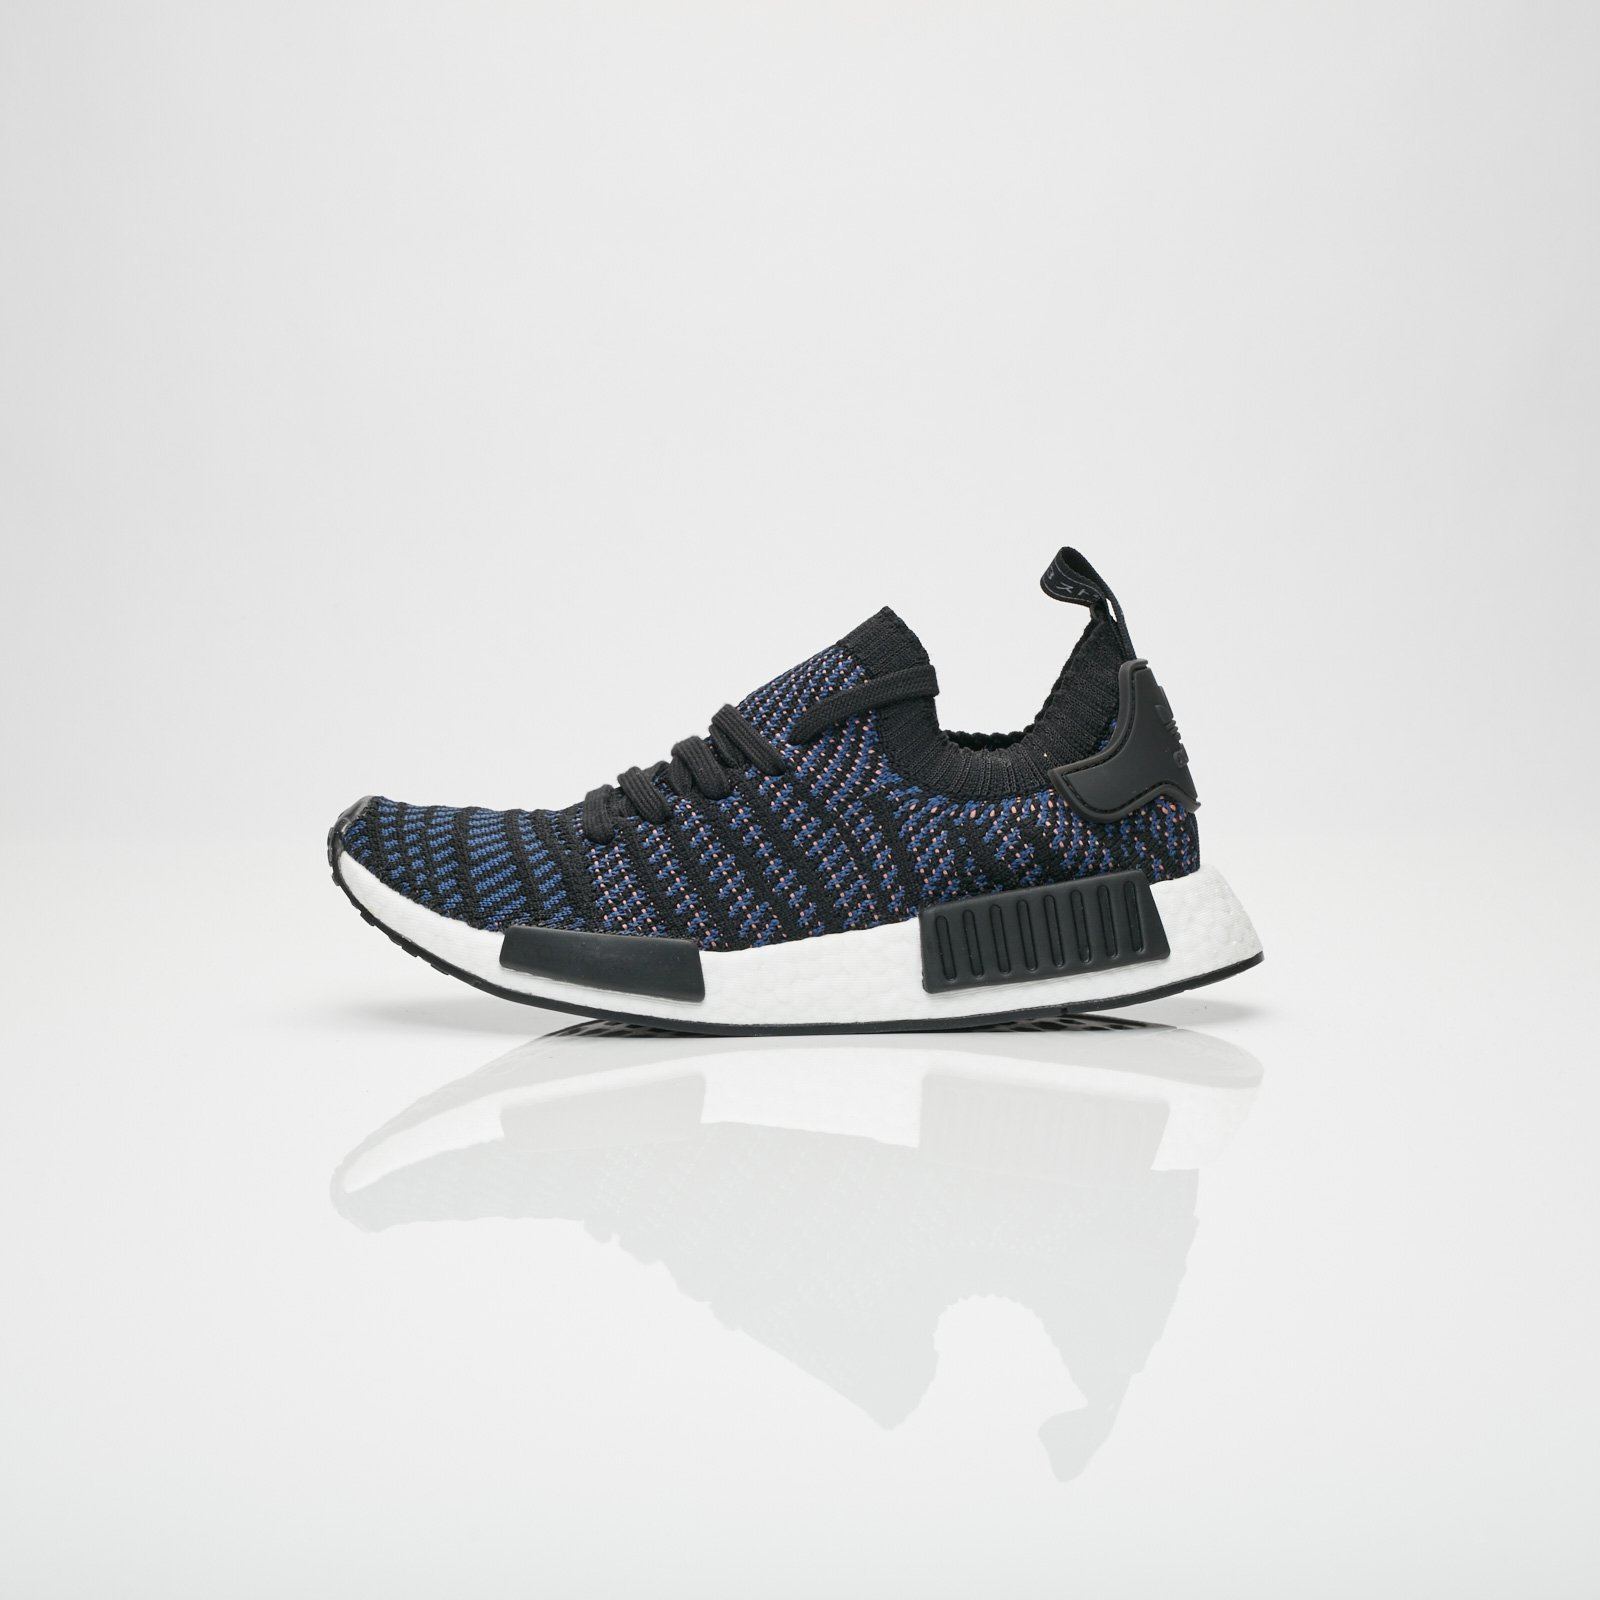 check out 6c33d bdaf5 ... adidas Originals NMD R1 STLT PK W ...